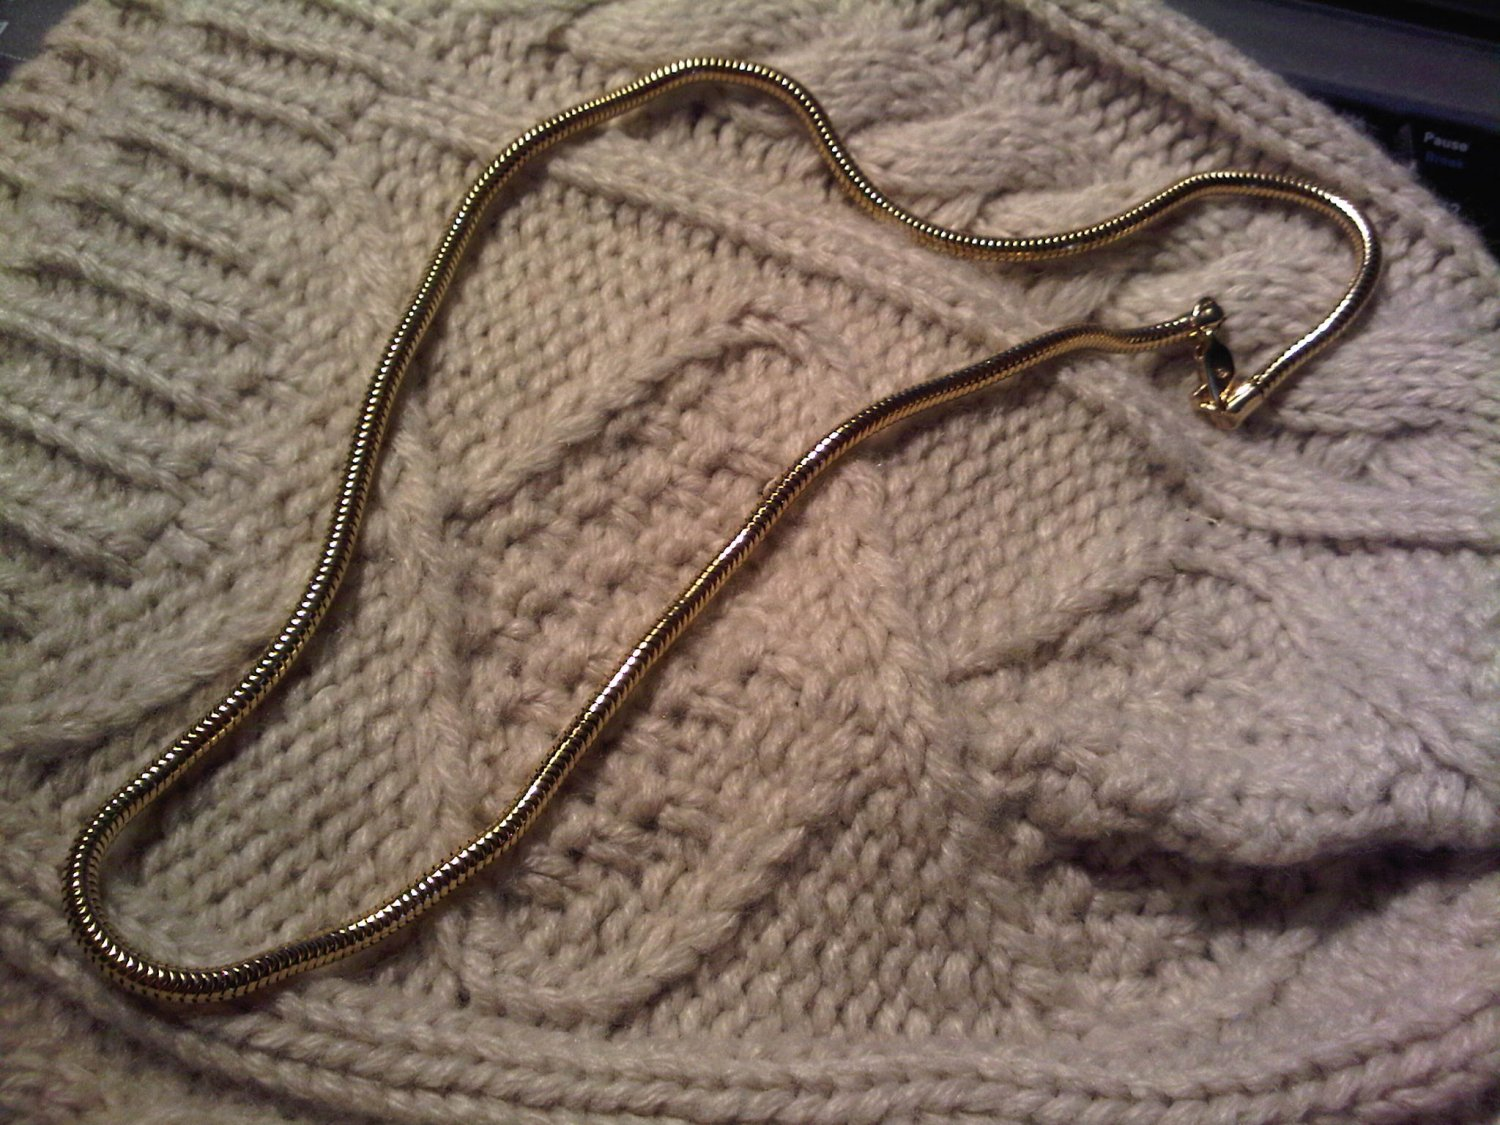 snake gold tone necklace VINTAGE JEWELRY WOMEN'S FASHION CLOTHING ACCESSORY